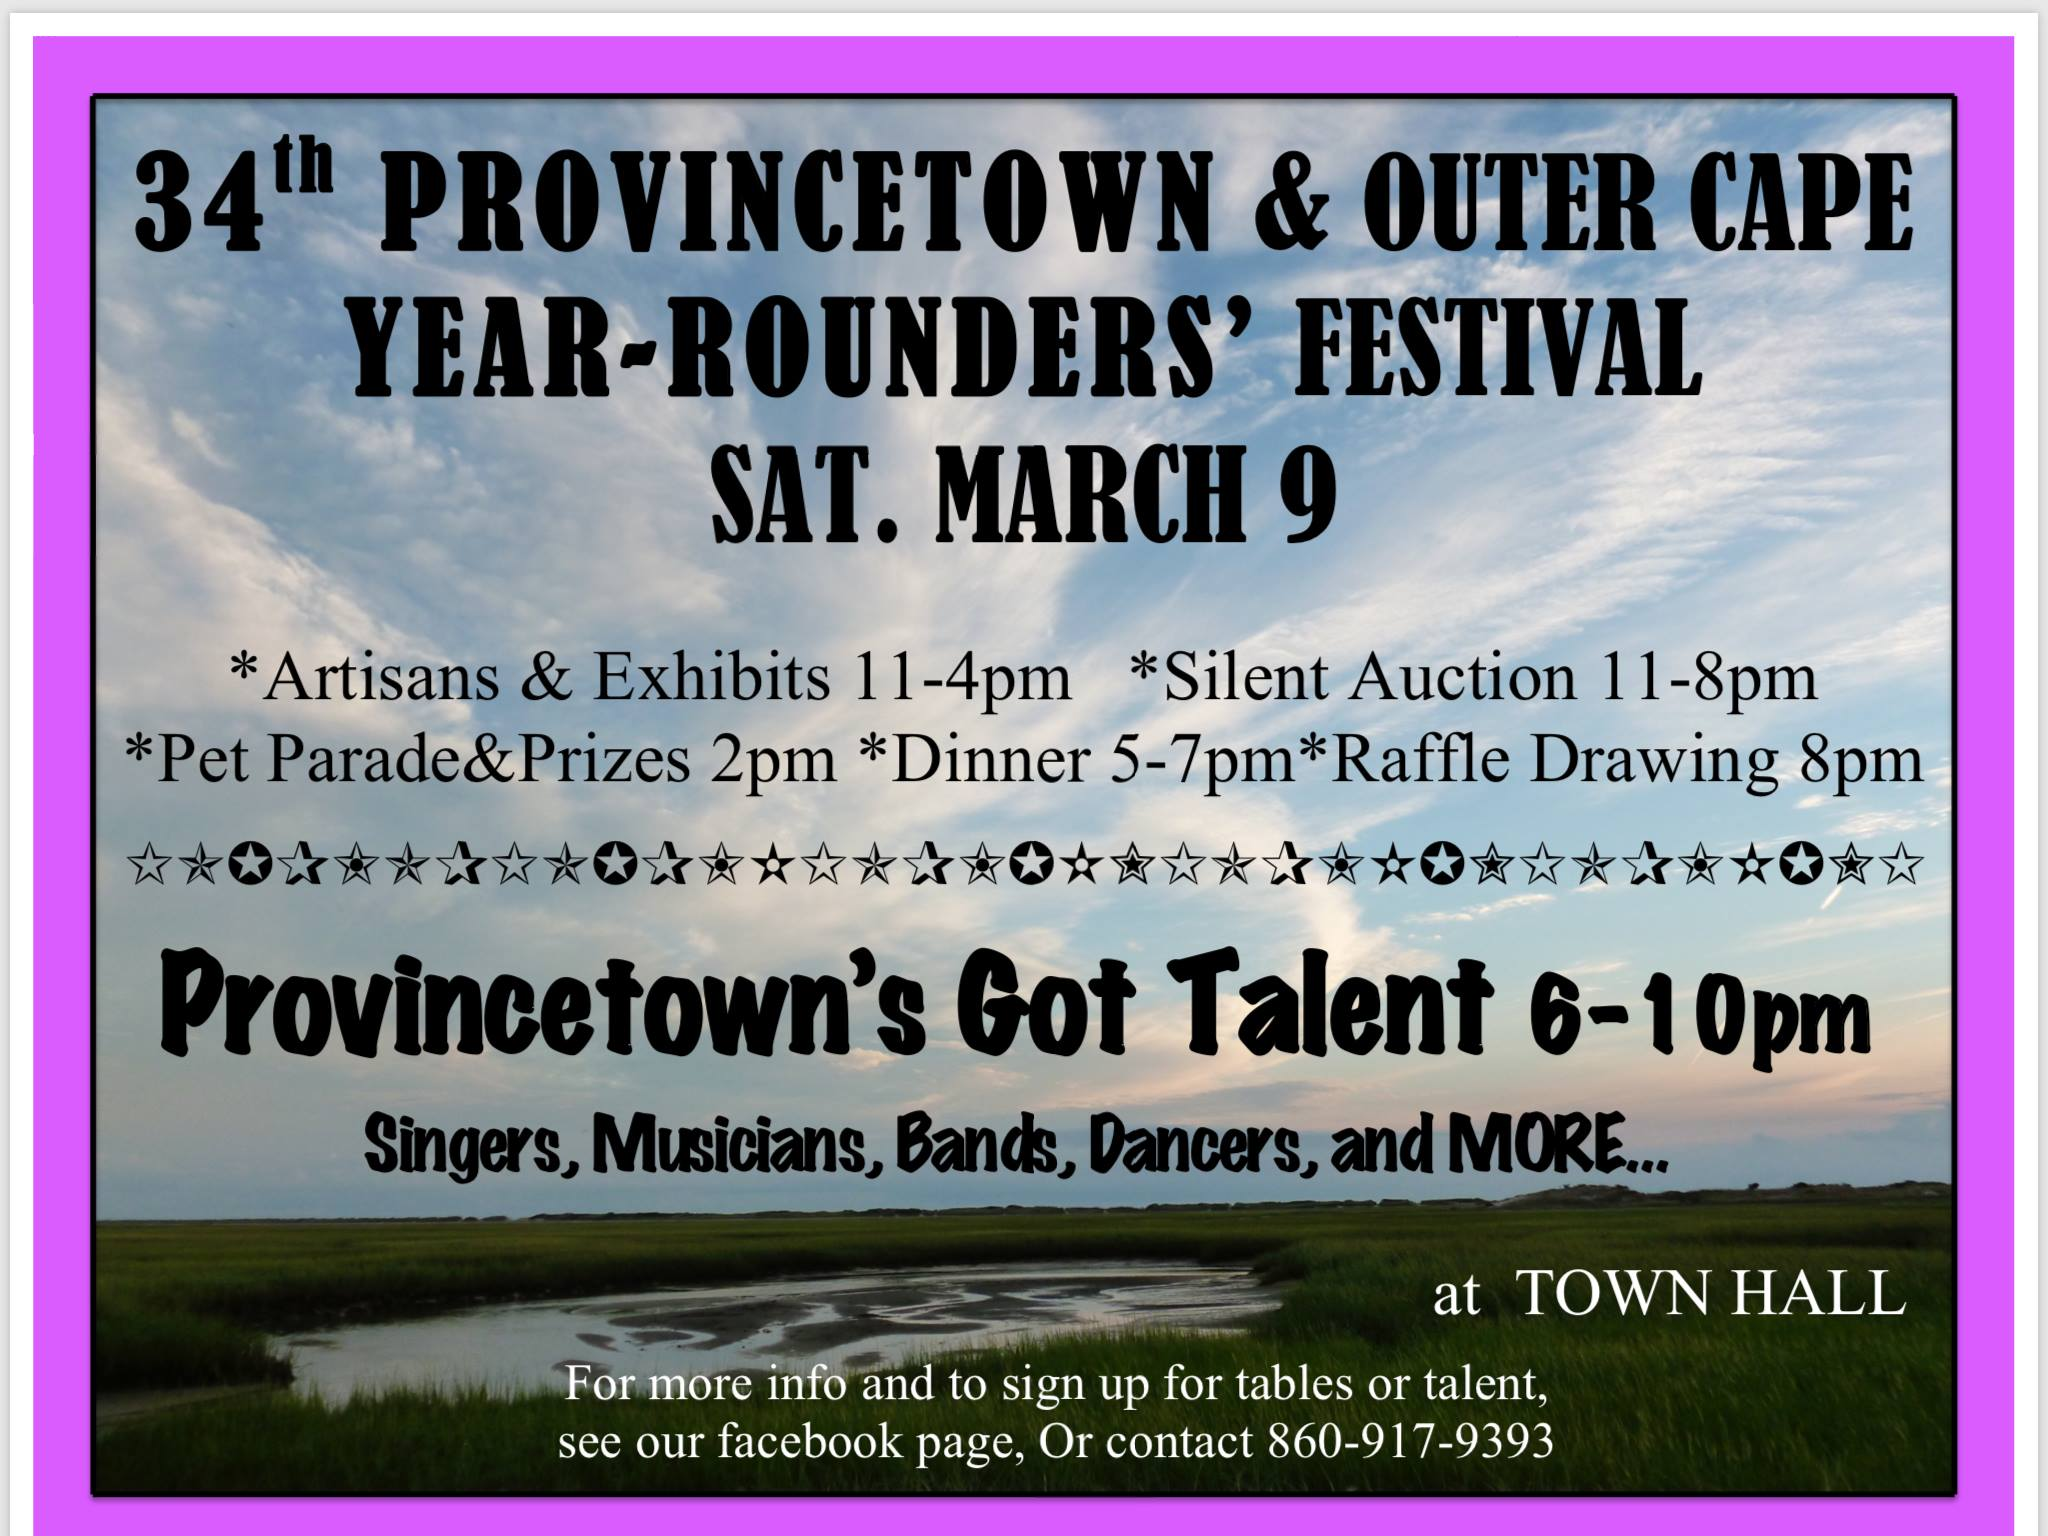 34th-Annual-Provincetown-Year-Rounders'-Festival-poster.jpg